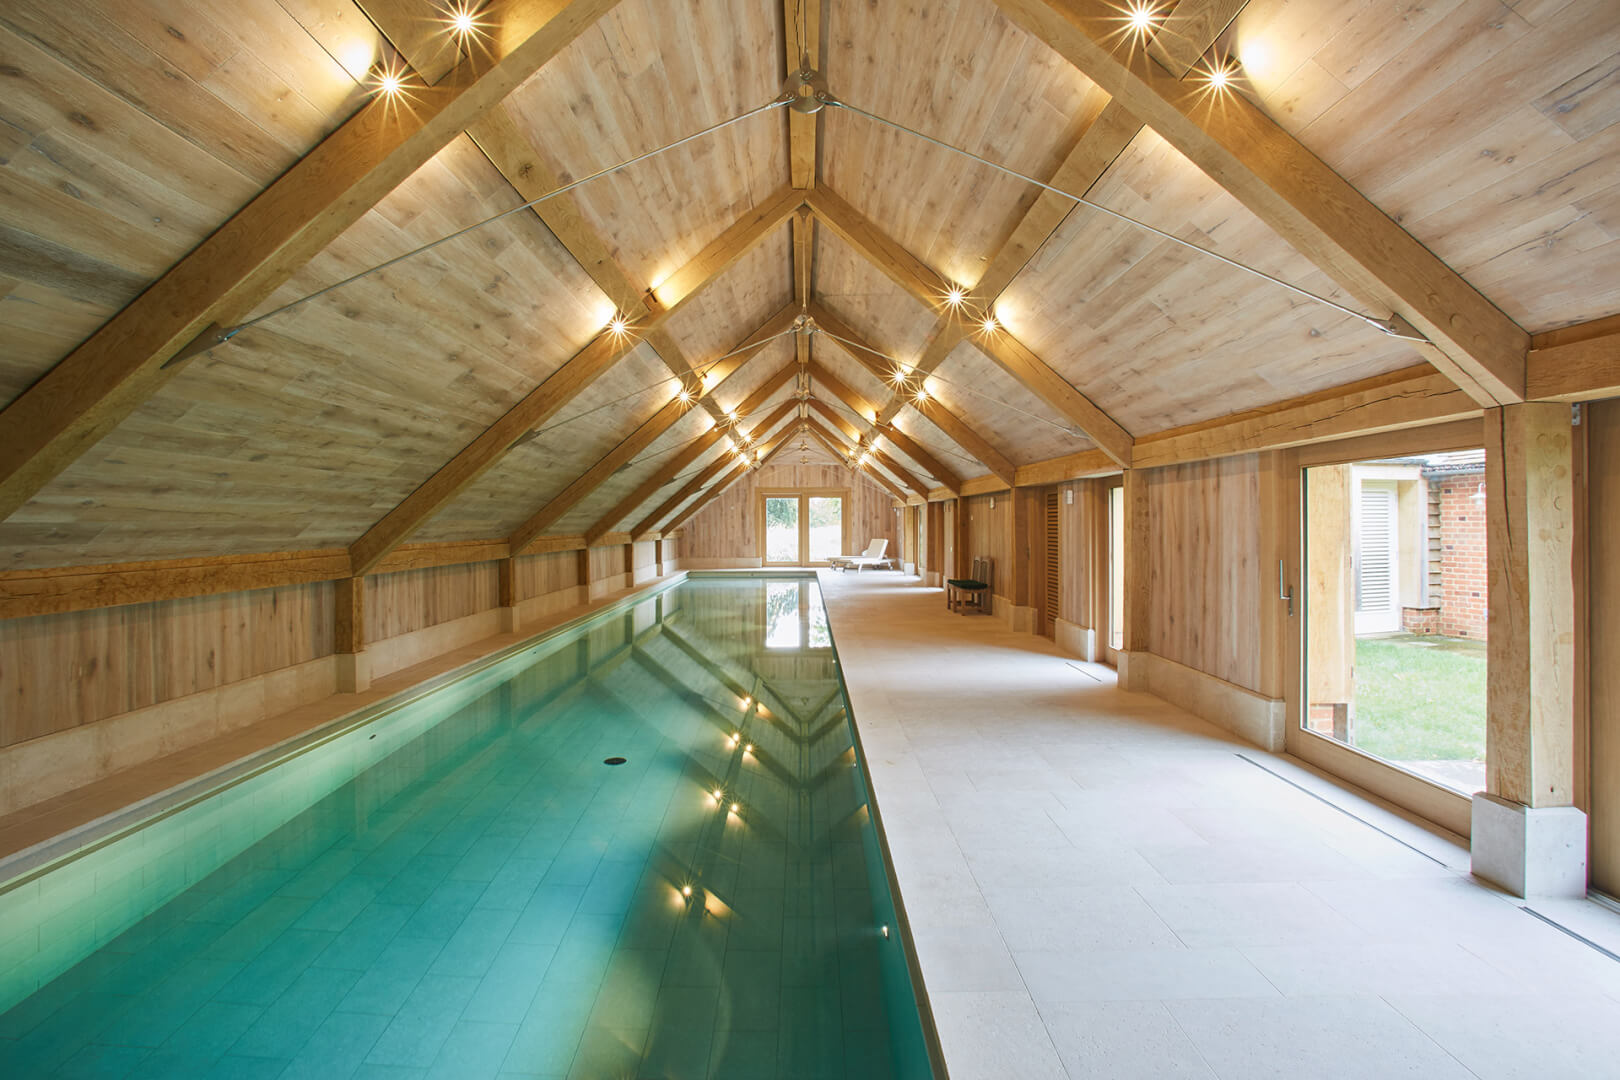 Luxury Residential Indoor pool and outdoor spa